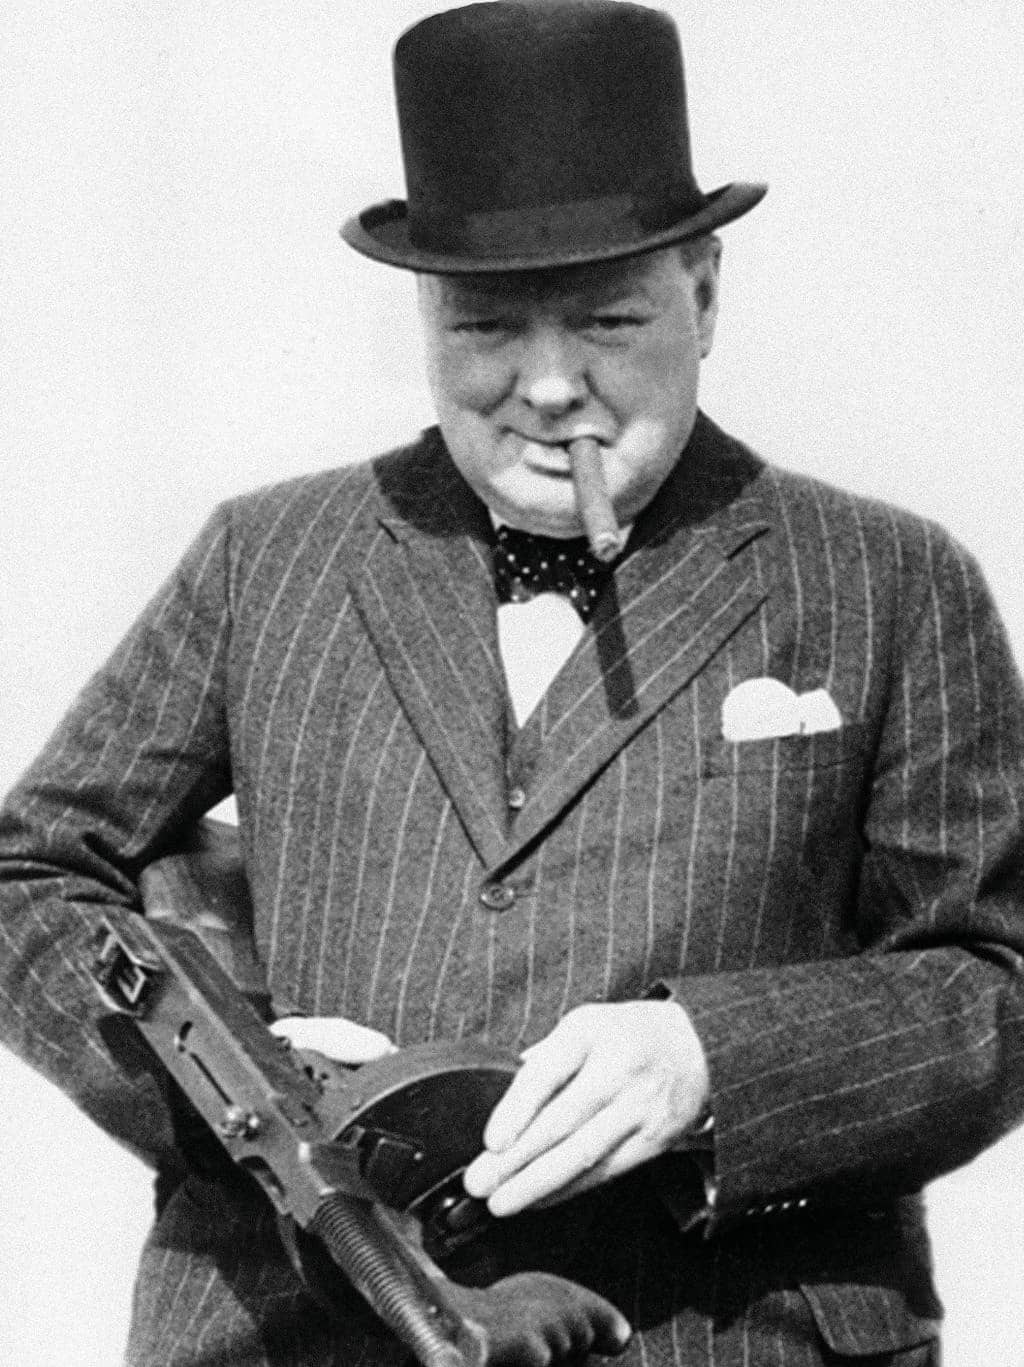 The personal armoury of Sir Winston Churchill